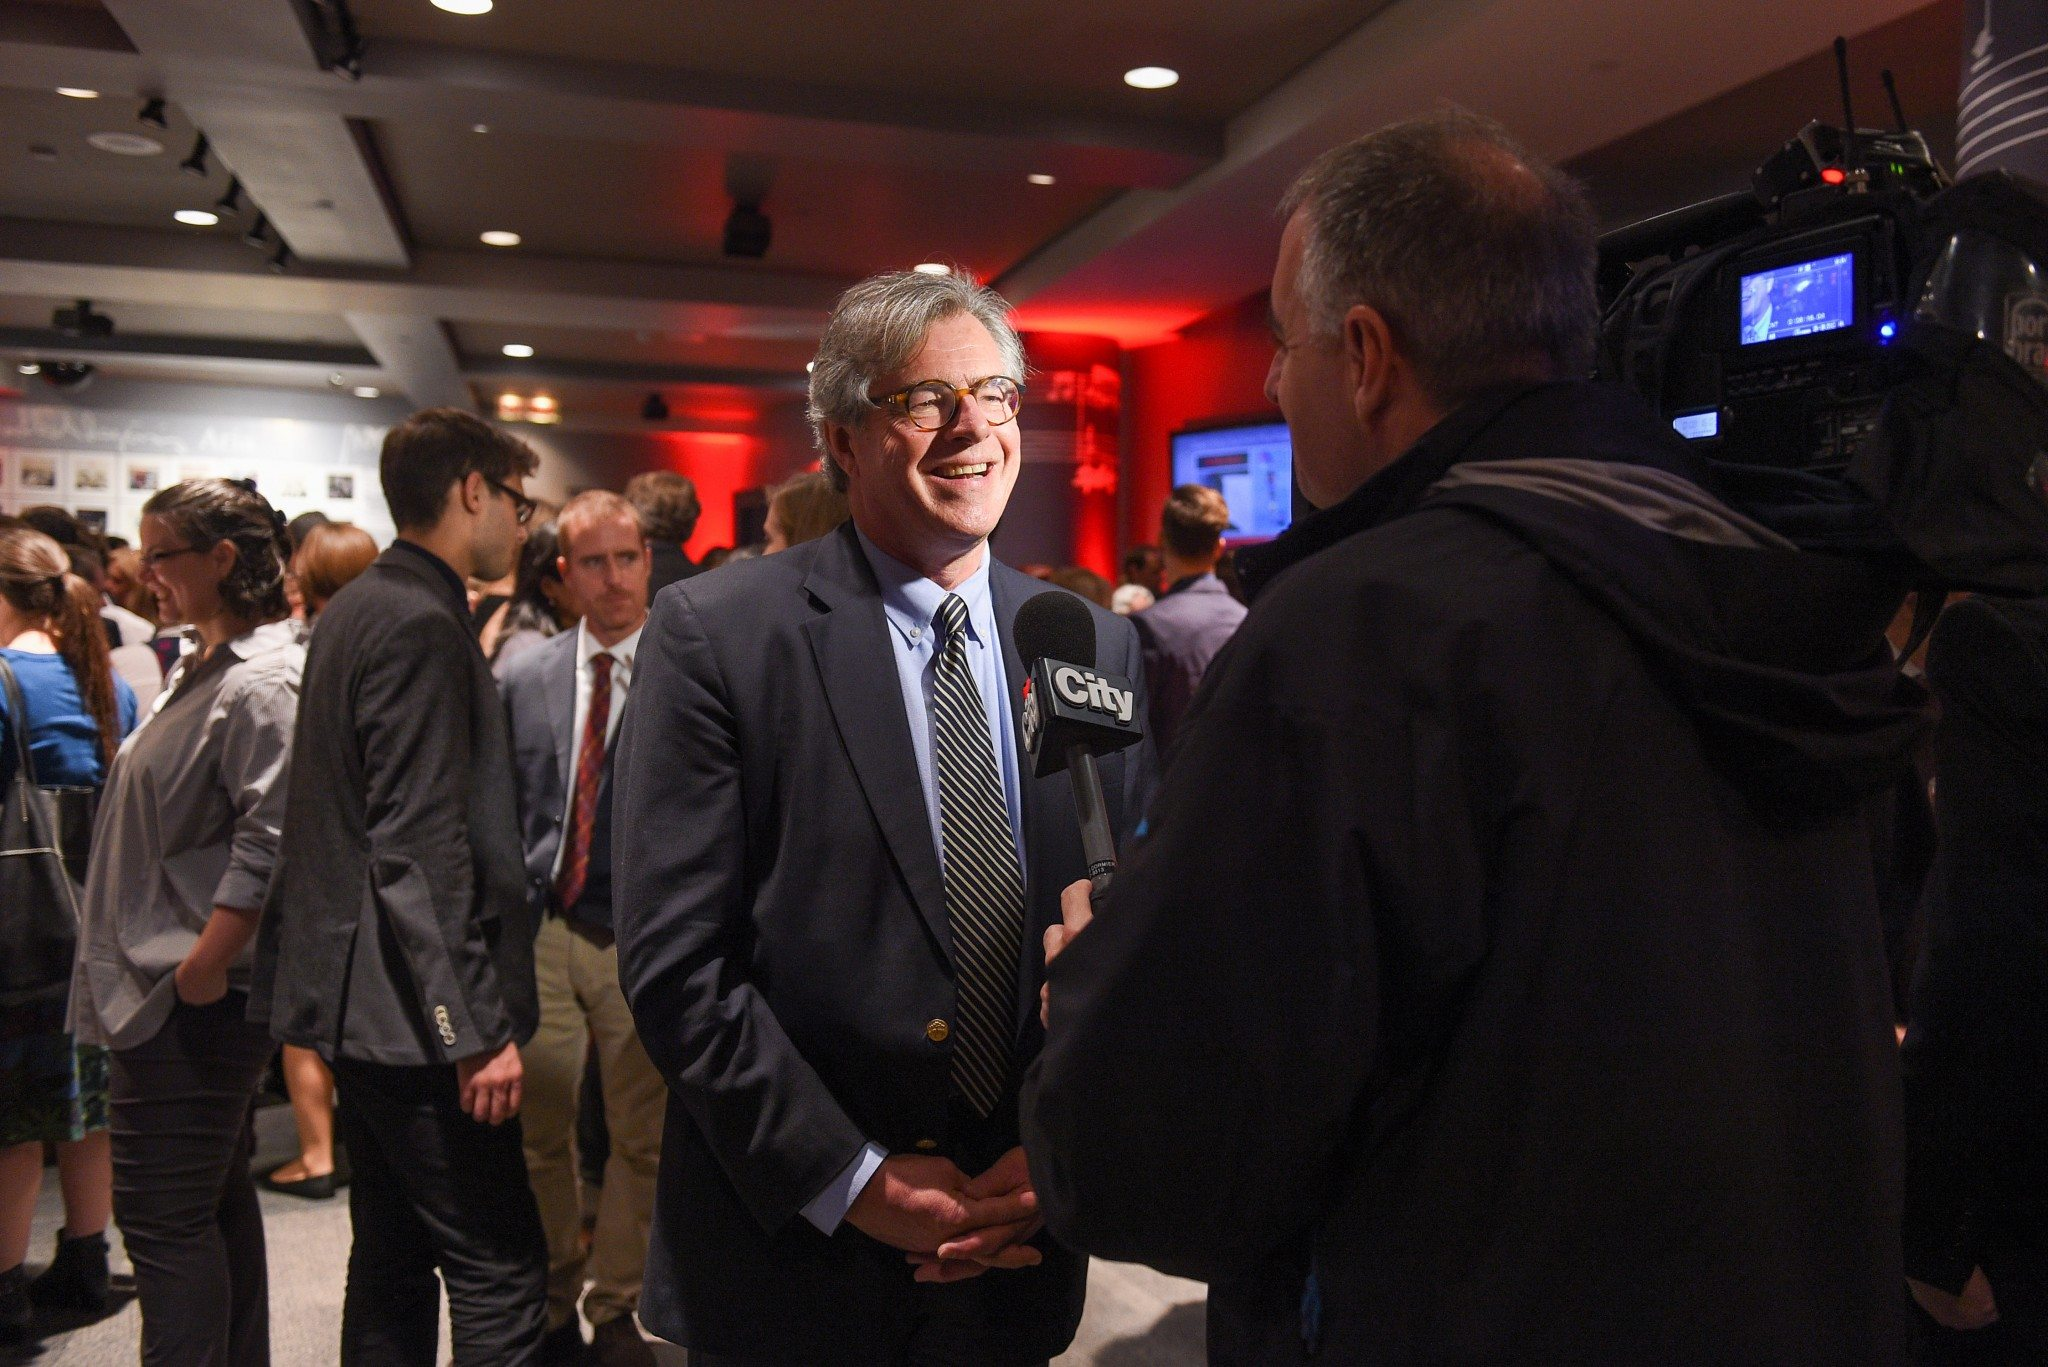 WT chair Doug Knight interviewed by CityTV (Photo: George Pimentel Photography)